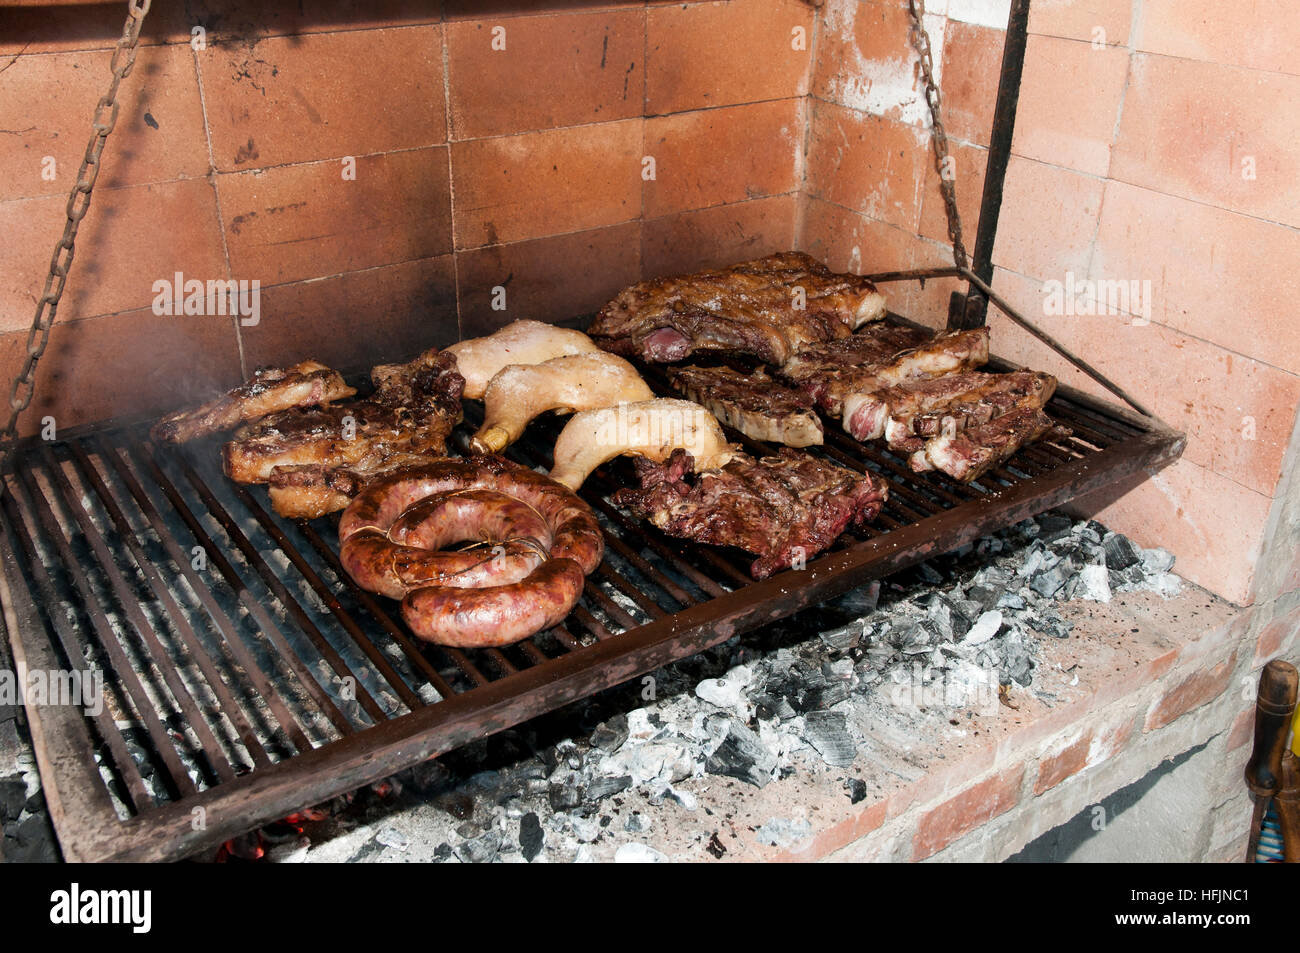 Barbecue from Argentina - Stock Image